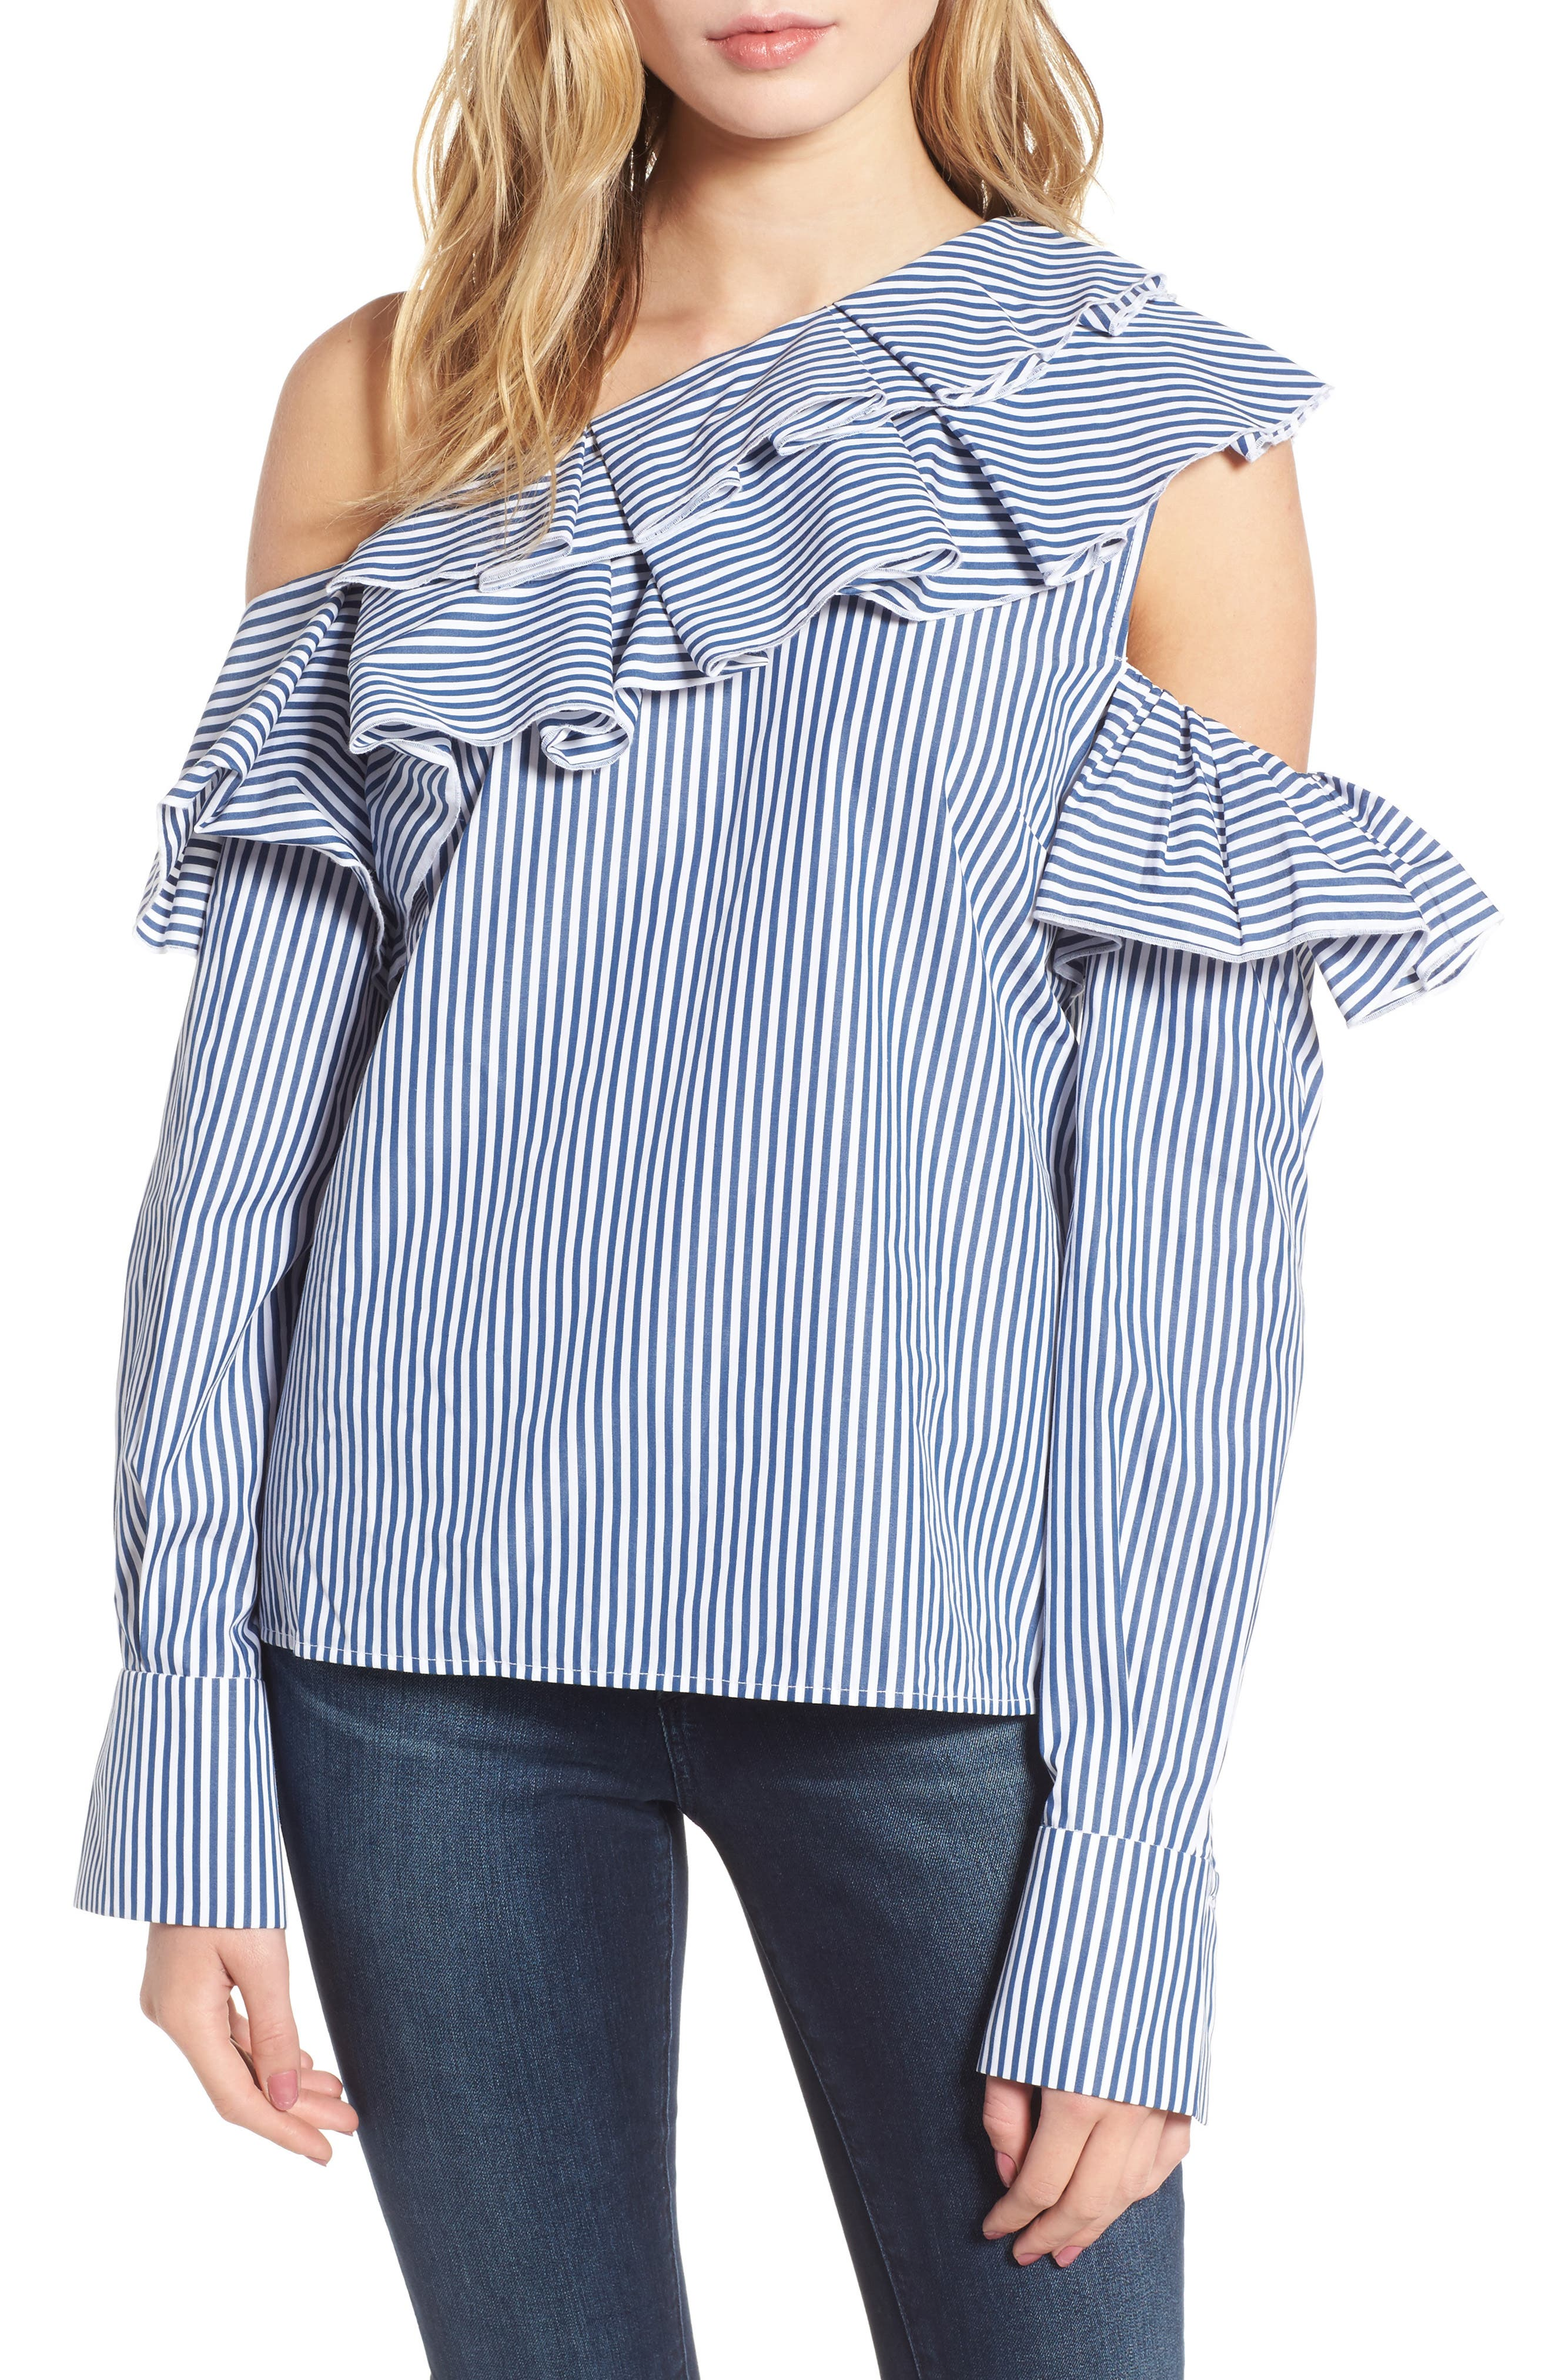 Ruffle One-Shoulder Blouse,                         Main,                         color, 410